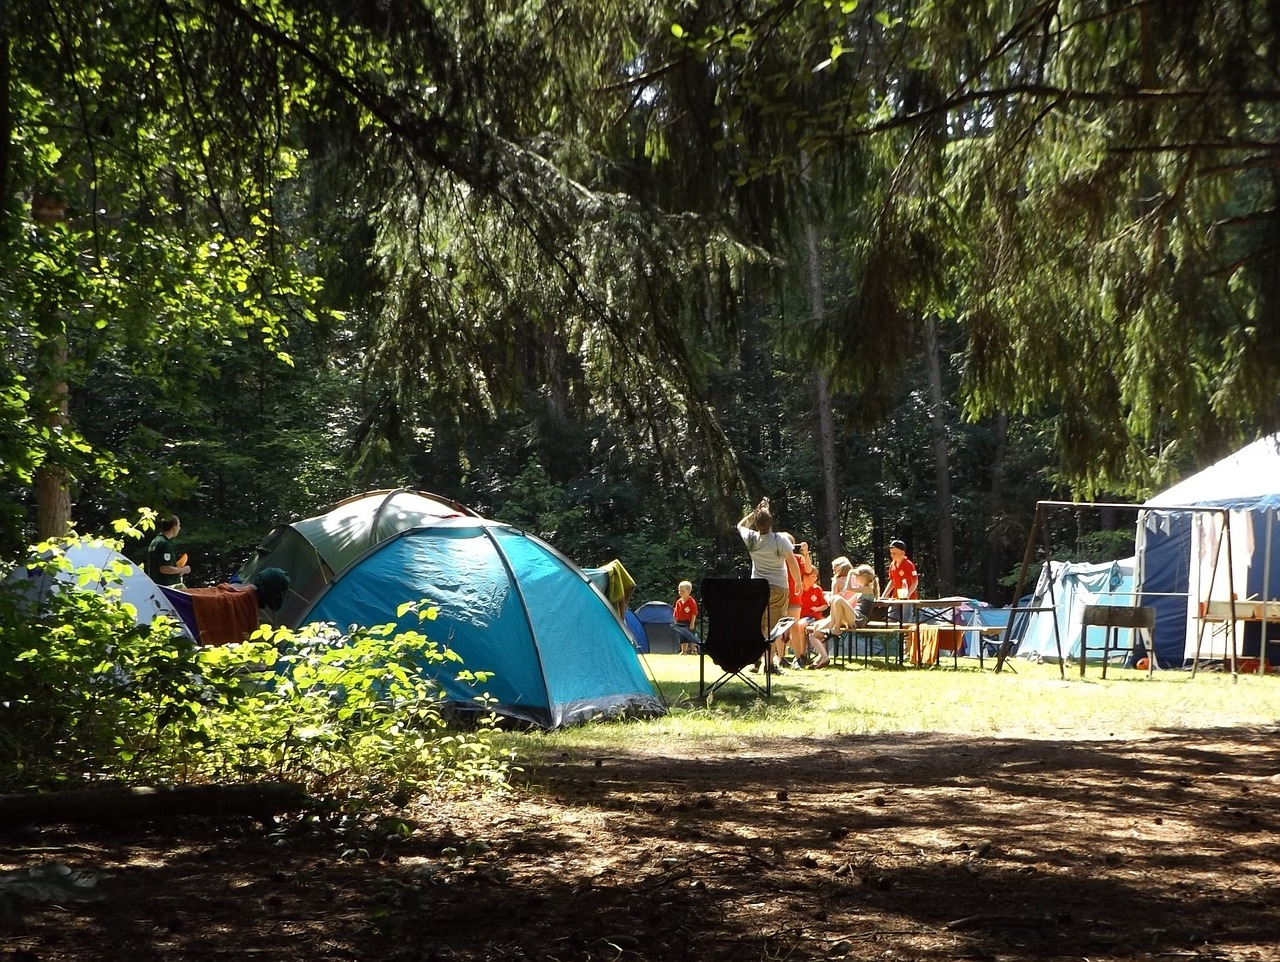 5 Cooking Tips for Your Next Camping Trip